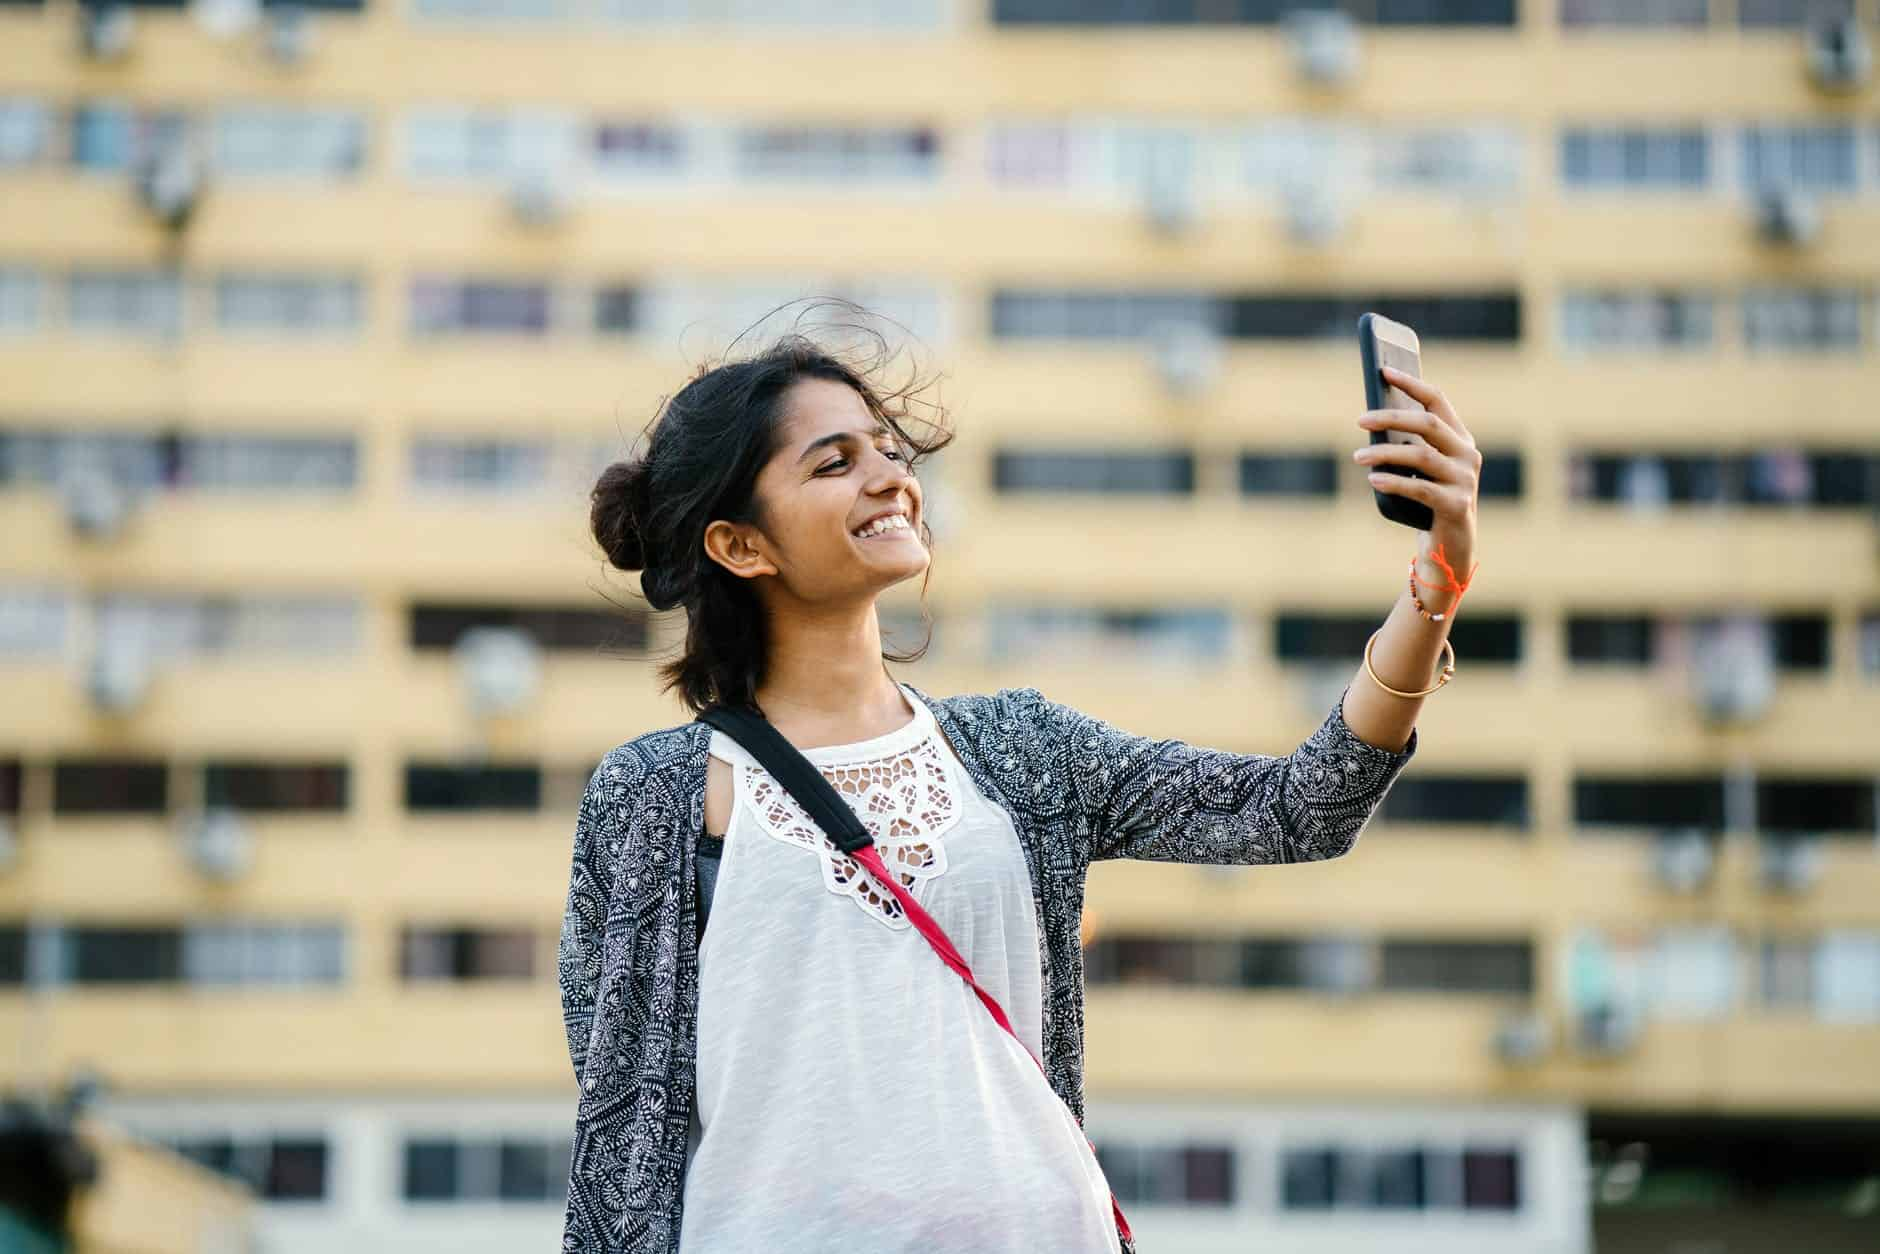 Some Tips To Take The Perfect Selfie 6